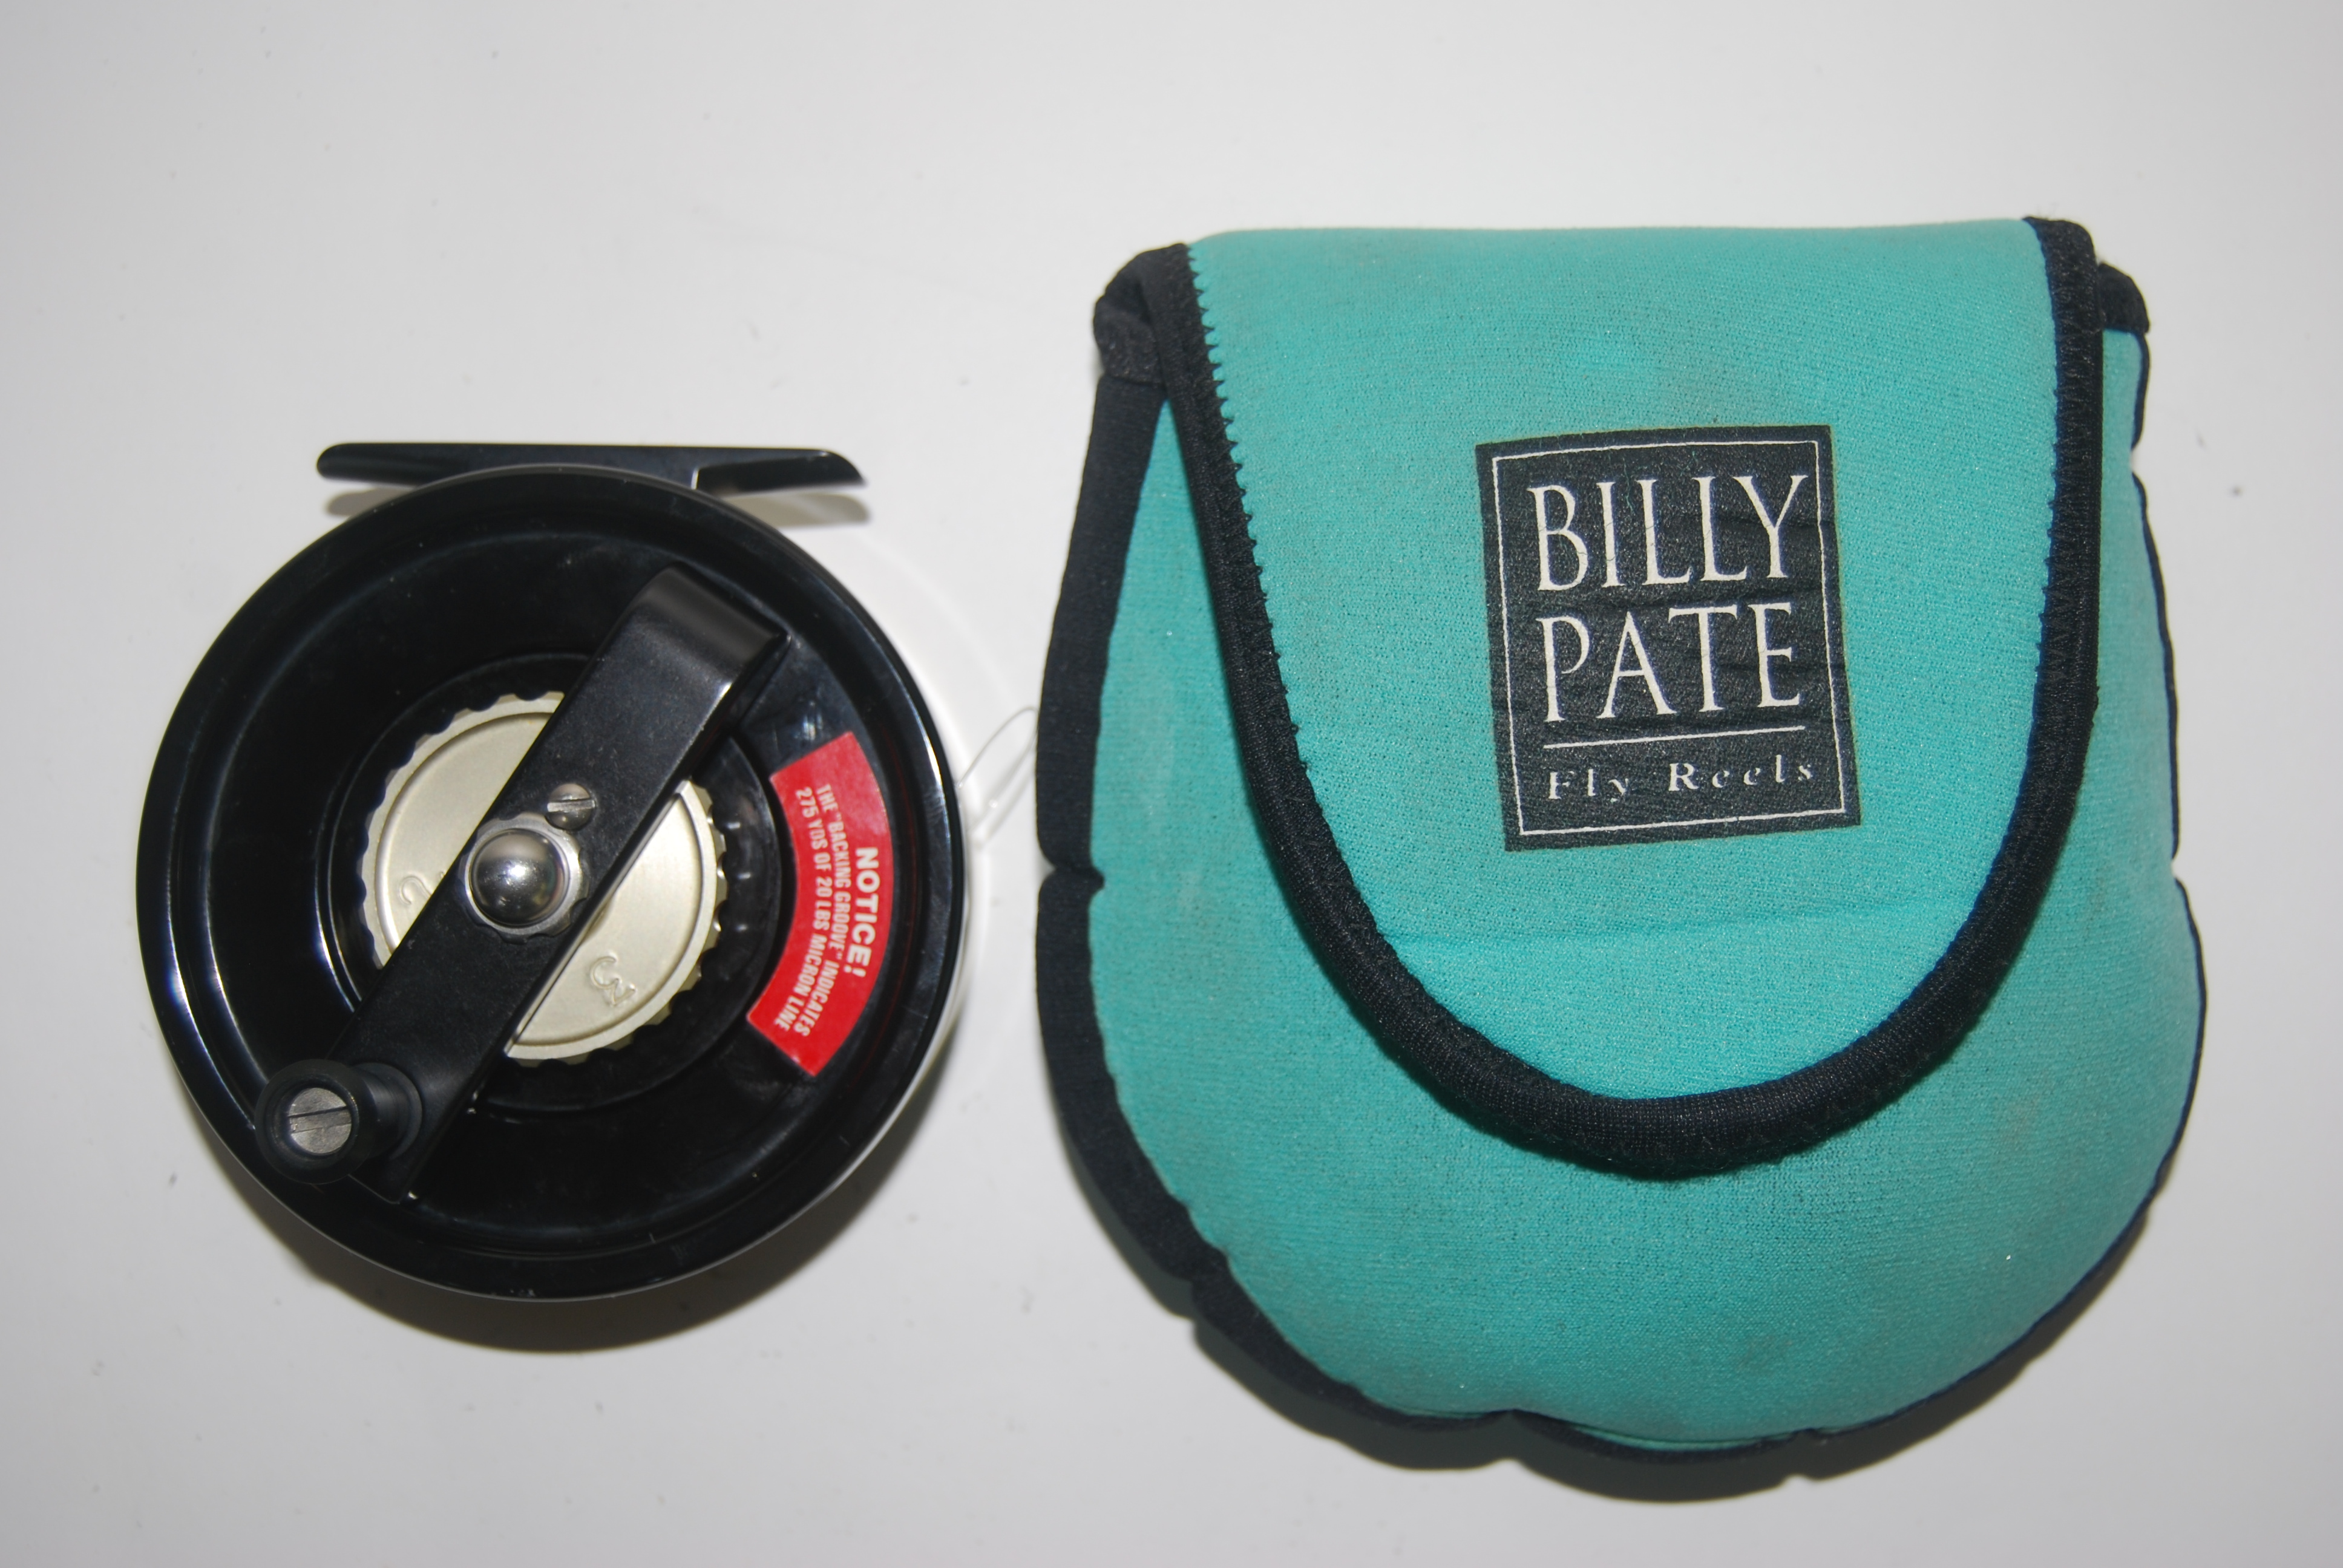 "Image for  3 1/2"" PATE BONEFISH AR RH/LH. 8.2 oz. Cap. WF9F + 275 yd. 20# Micron. Billy Pate Neoprene Pouch."